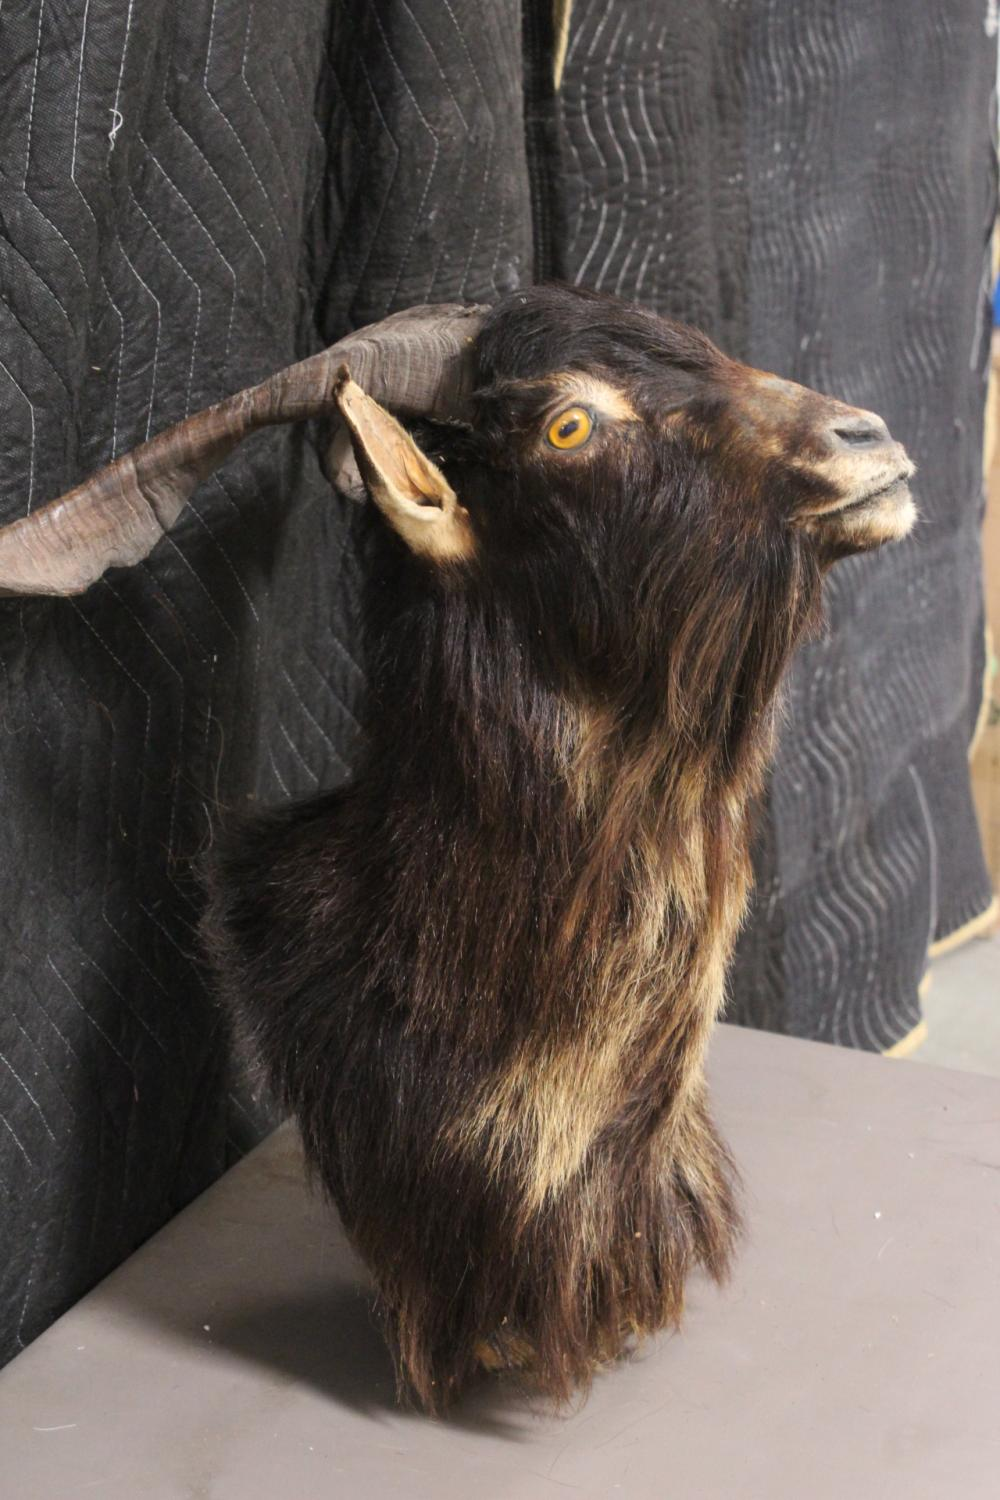 Lot 188: A shoulder mount taxidermy of mountain goat